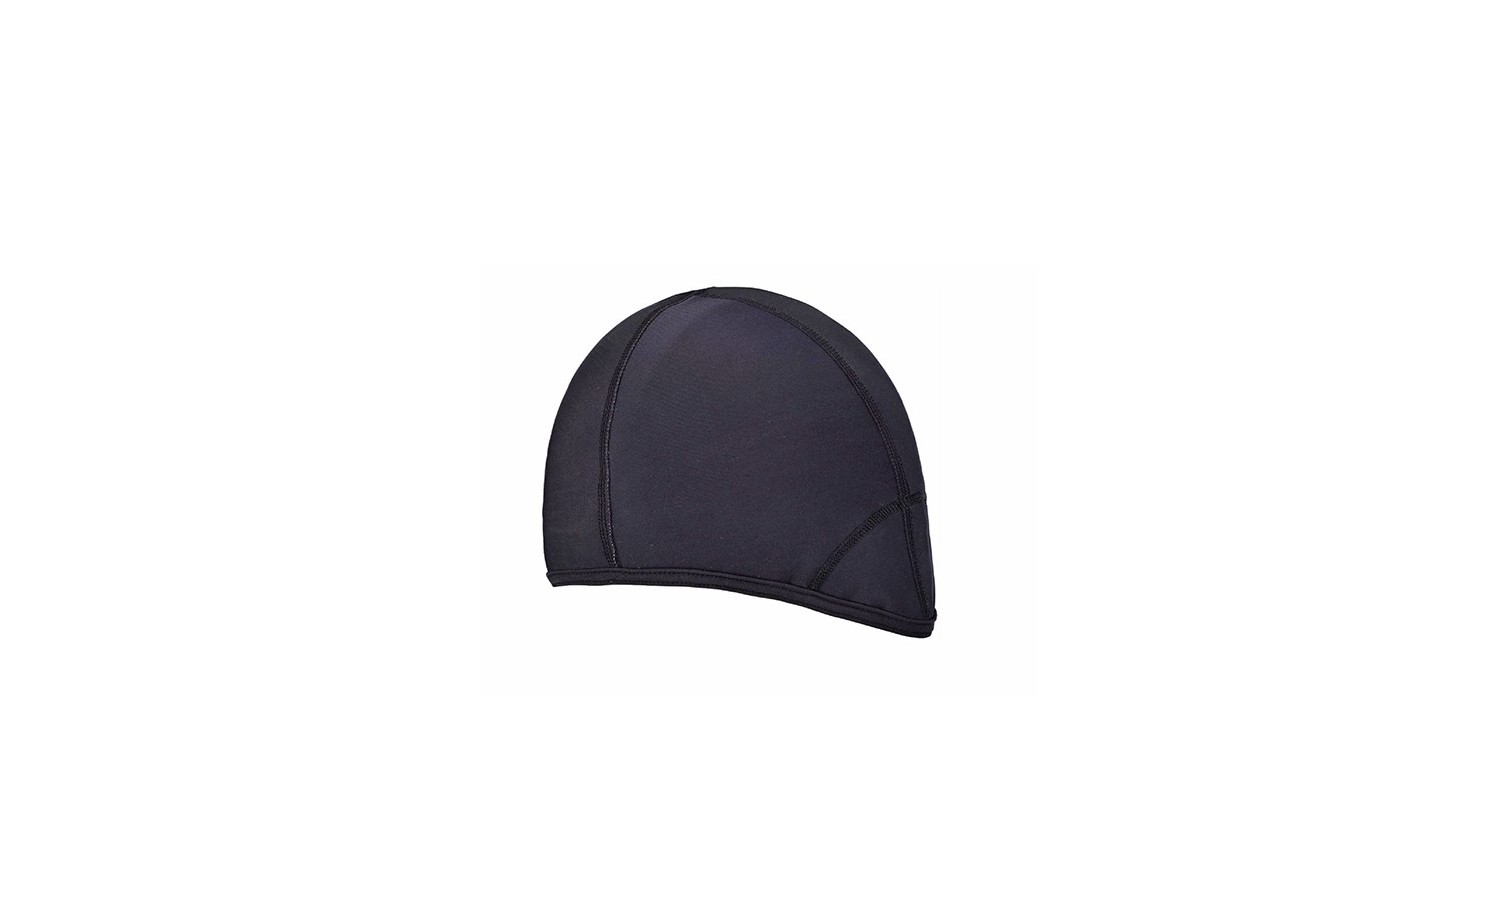 Helmet Hat BBB BBW-97 Winter Helmet hat